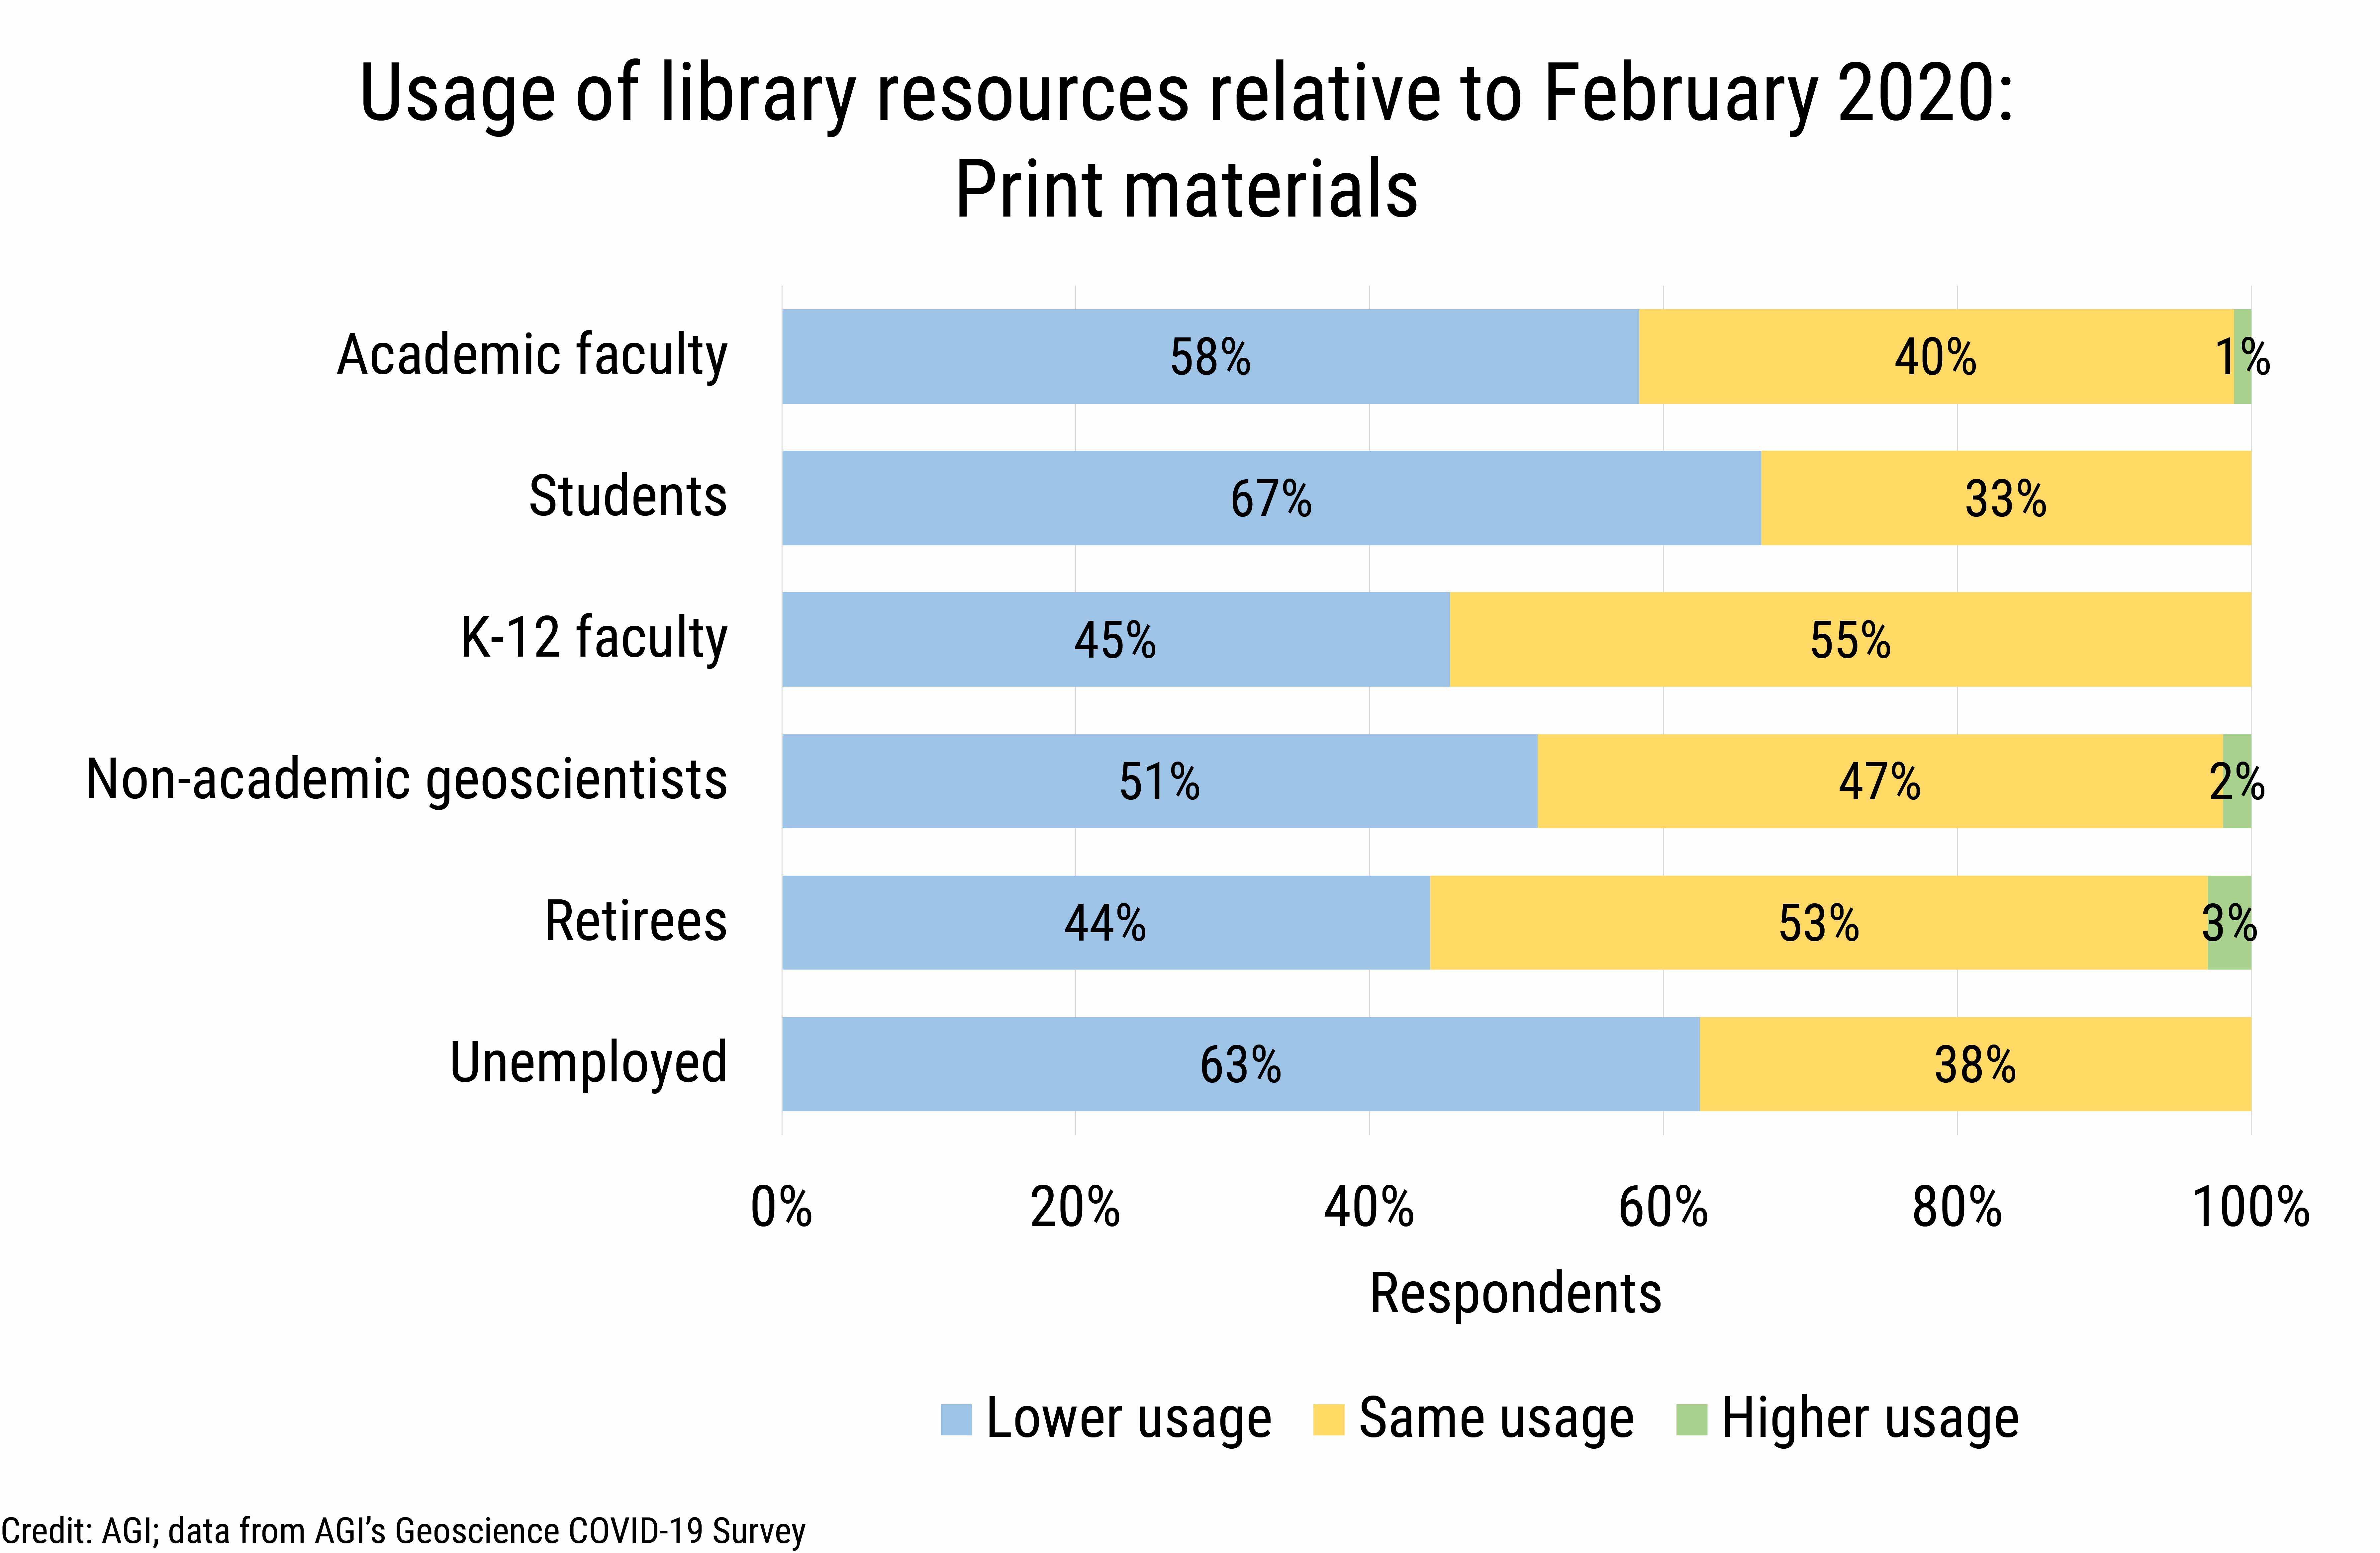 DB_2020-026 chart 06: Library resource usage by cohort: print materials (Credit: AGI; data from AGI's Geoscience COVID-19 Survey)